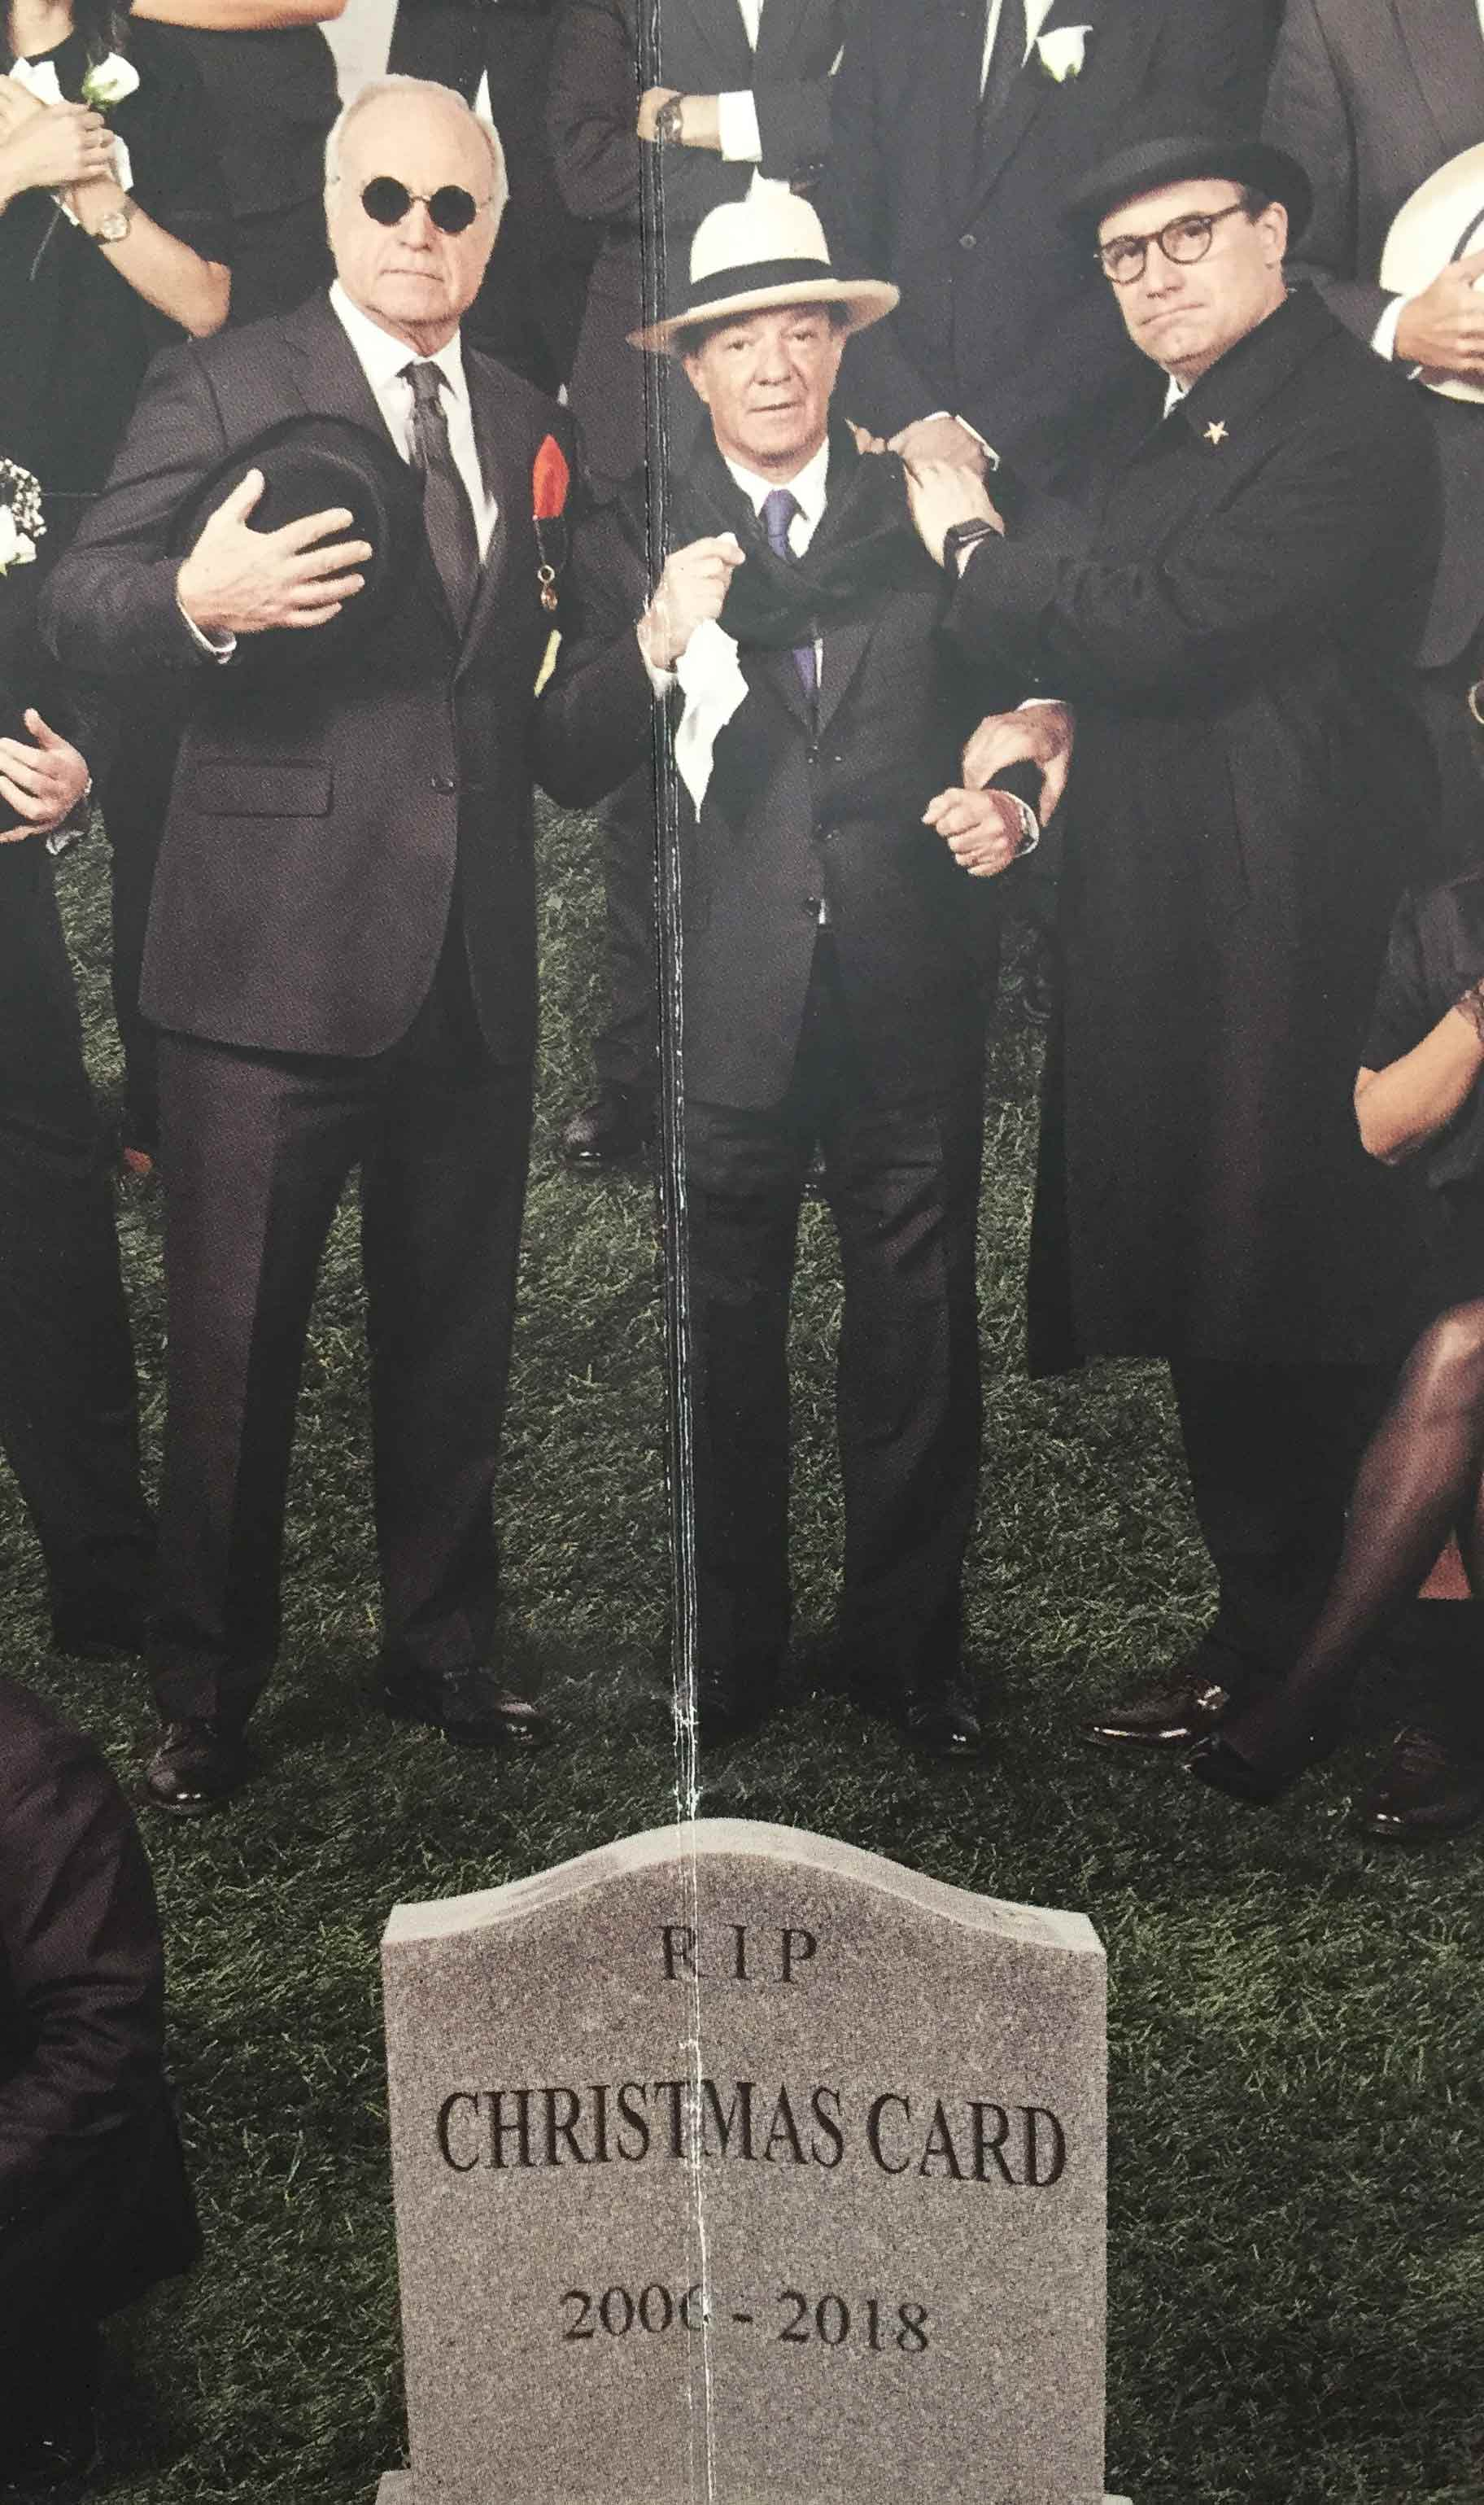 Bonkers Law Firm Christmas Card Gives Death A Starring Role